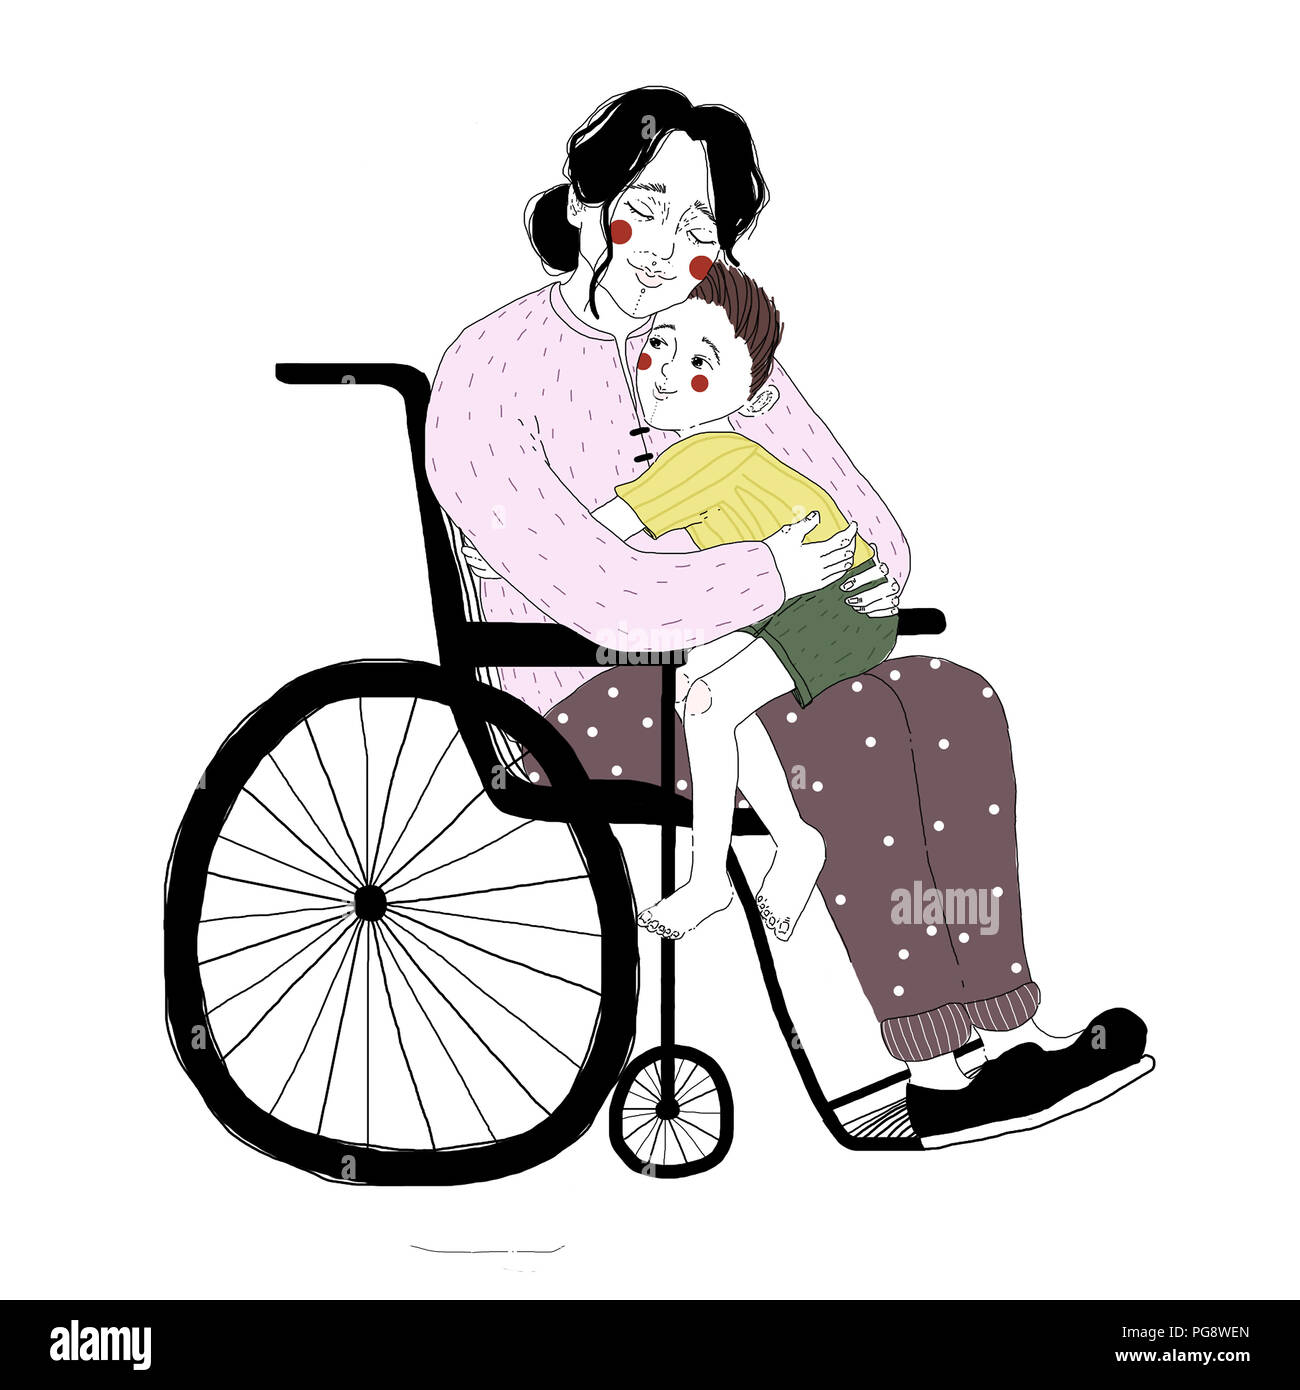 Drawing of disabled woman in wheelchair hugging little boy sitting on her lap. Pair of loving mother and son isolated on white background. Adorable mo - Stock Image